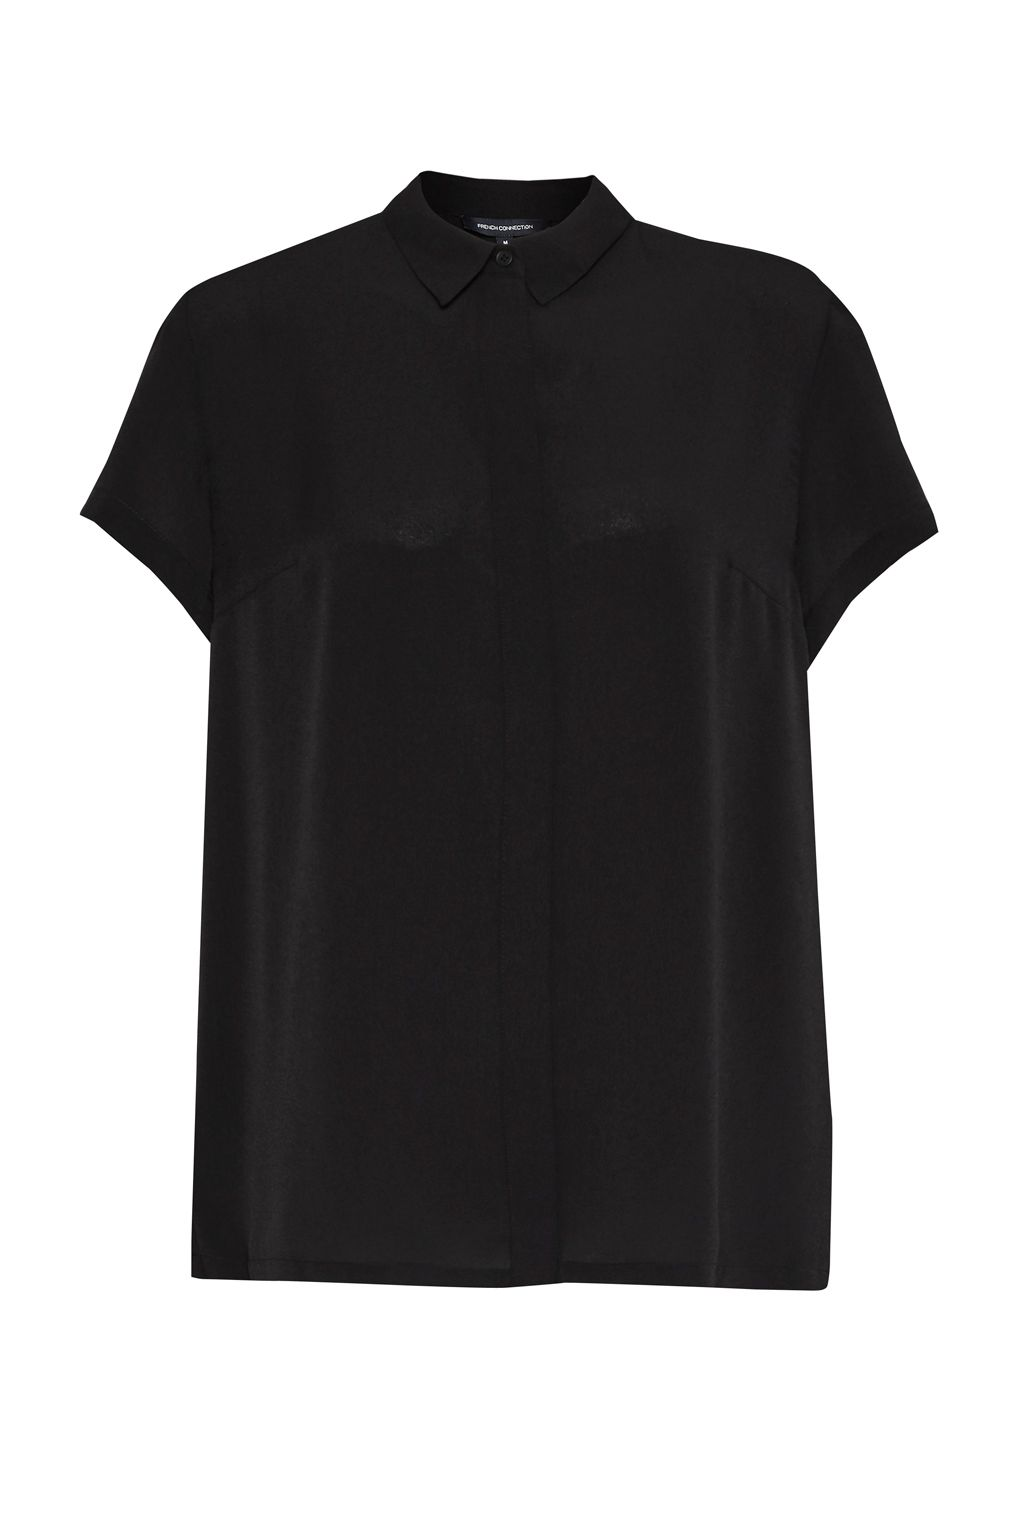 French Connection Classic Crepe Short Sleeve Shirt, Black